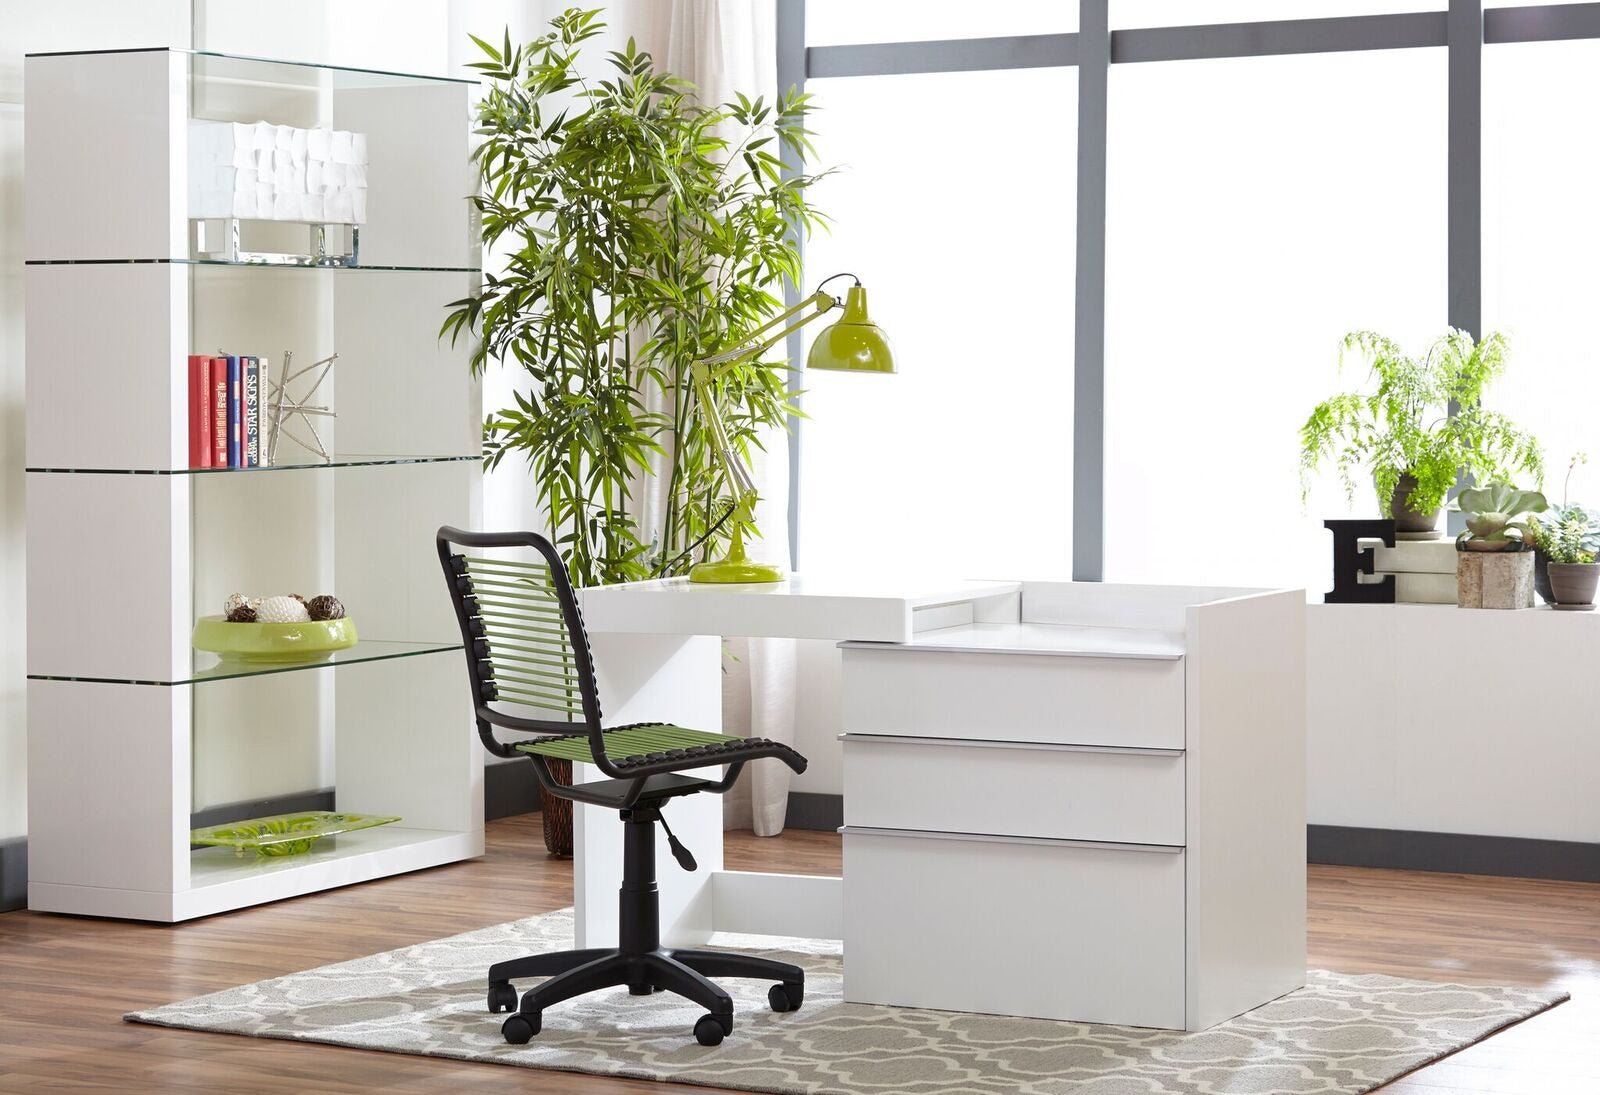 White Convertible Desk / Storage Cabinet With Slide Out Top